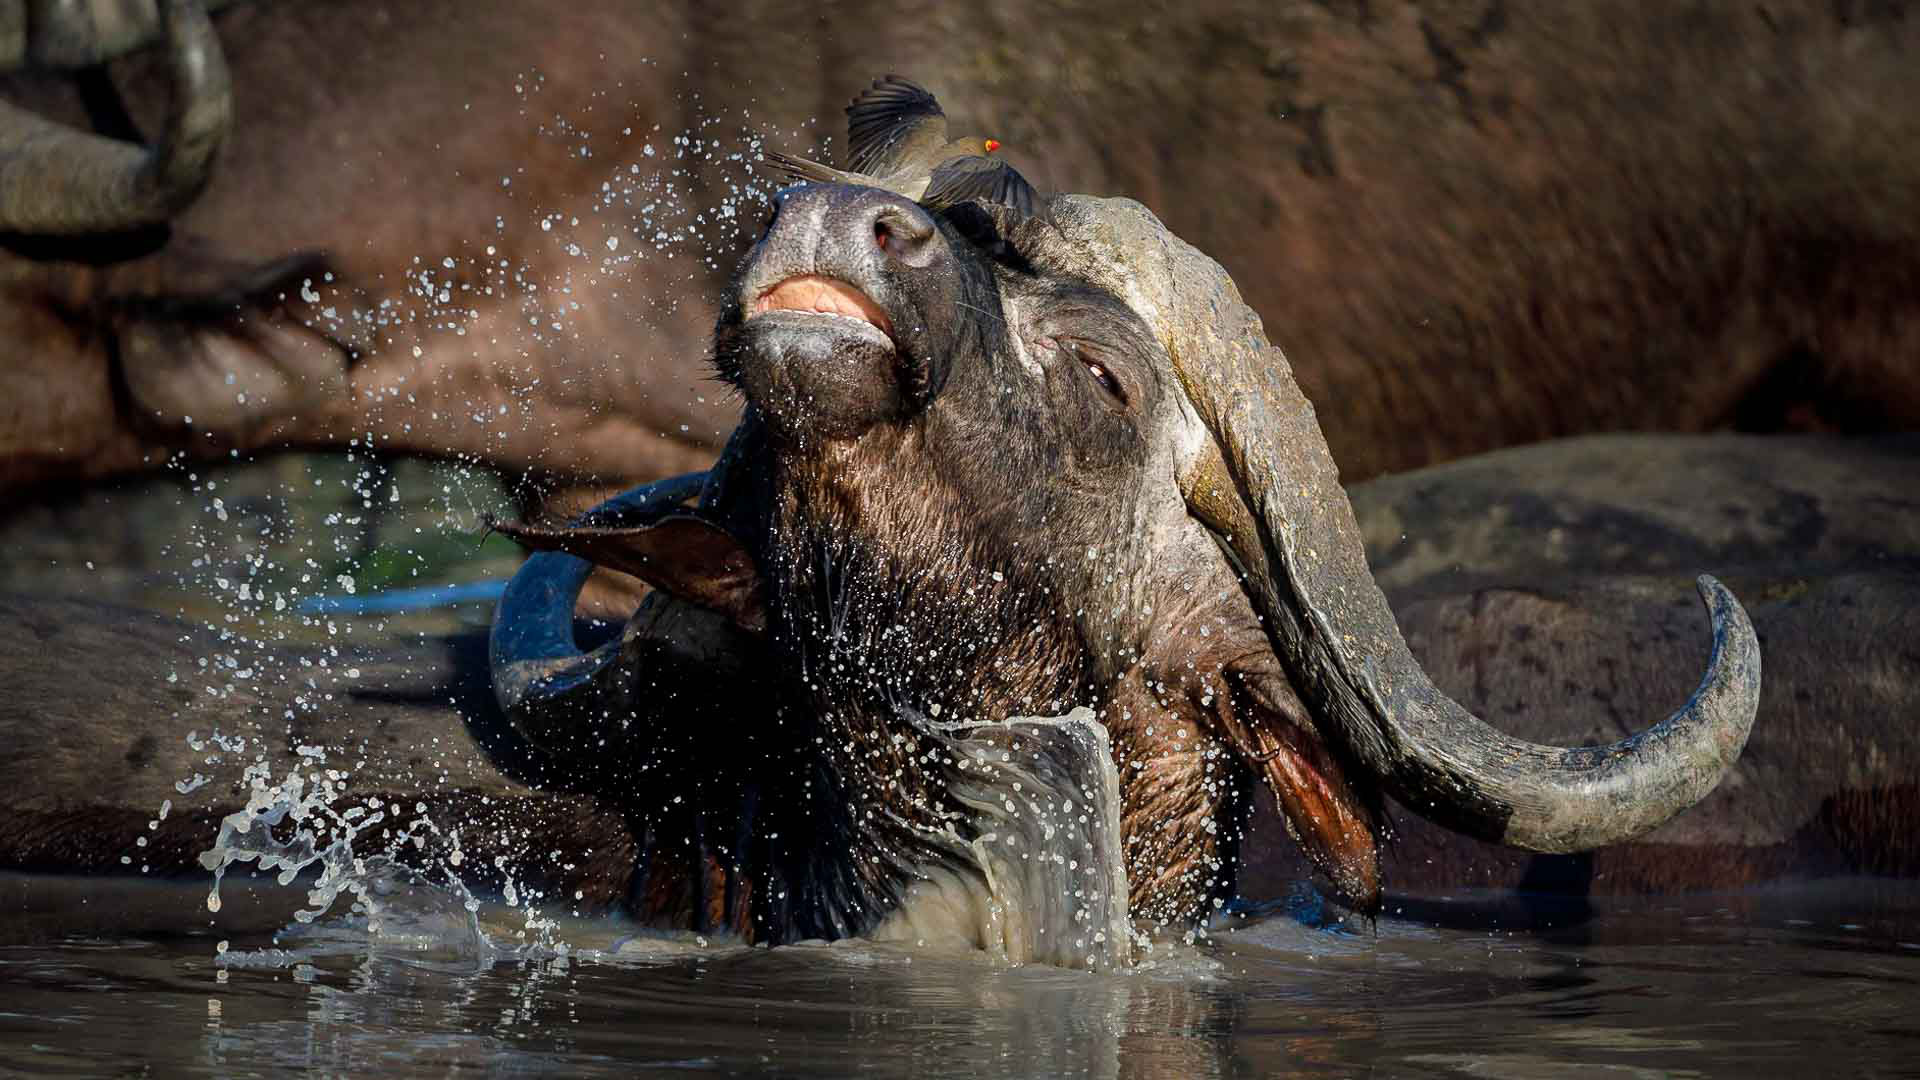 Tanda Tula - buffalo taking in the bath in the Greater Kruger, South Africa